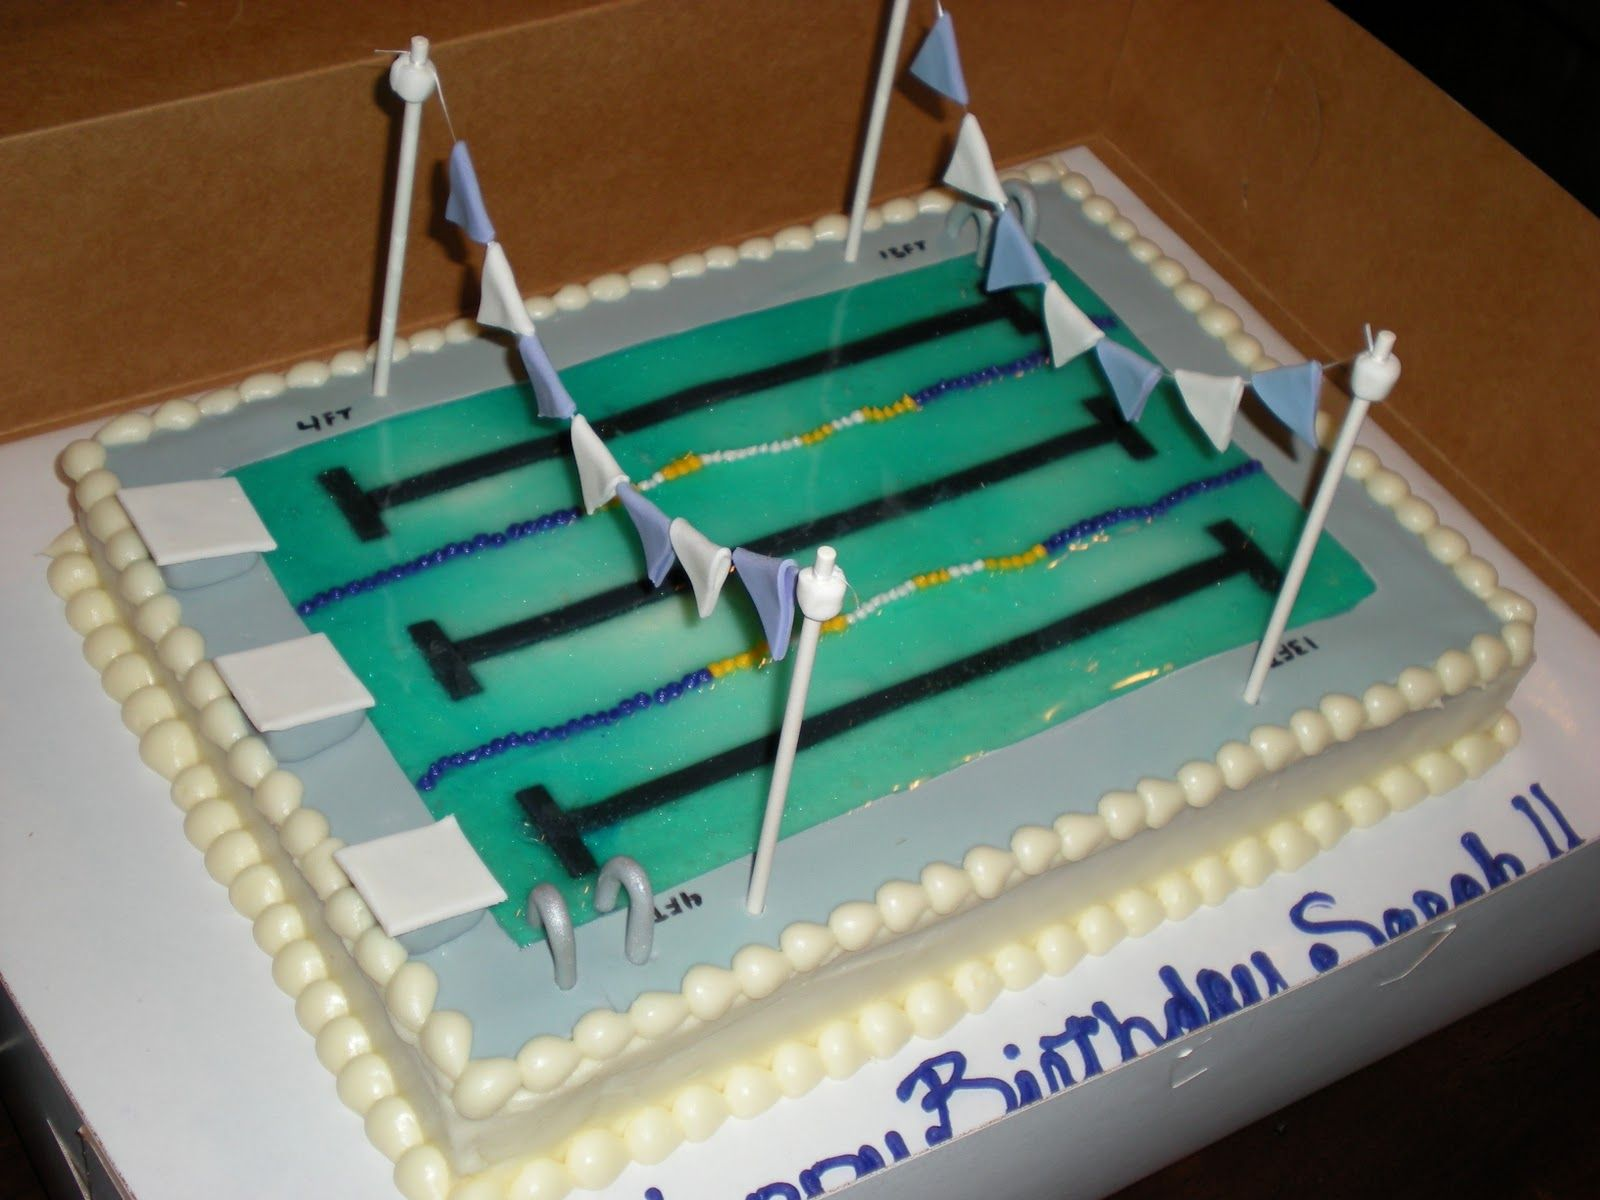 Swimming Pool Cake Ideas find this pin and more on pool party ideas swimming pool cake Swim Race Cake Super Cool Swimming Pool Birthday Cake